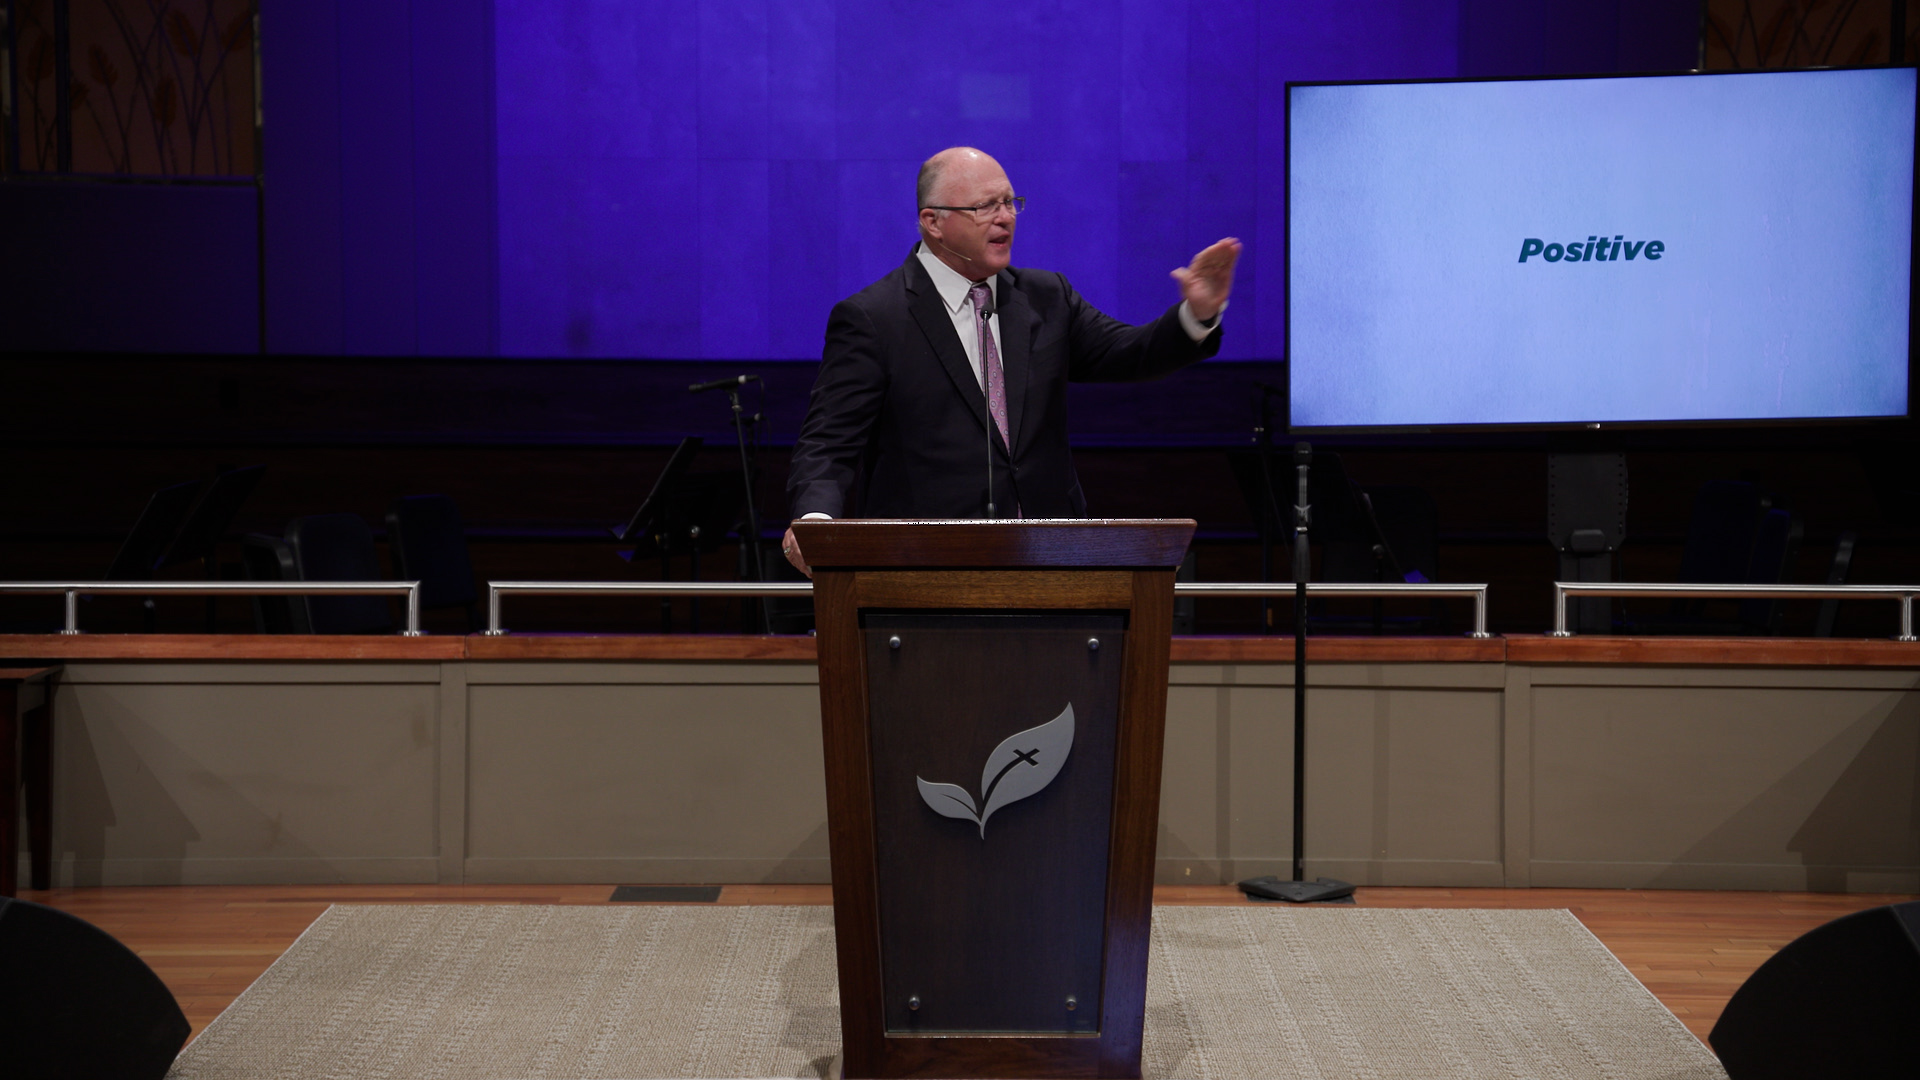 Pastor Paul Chappell: With Christ, We Can